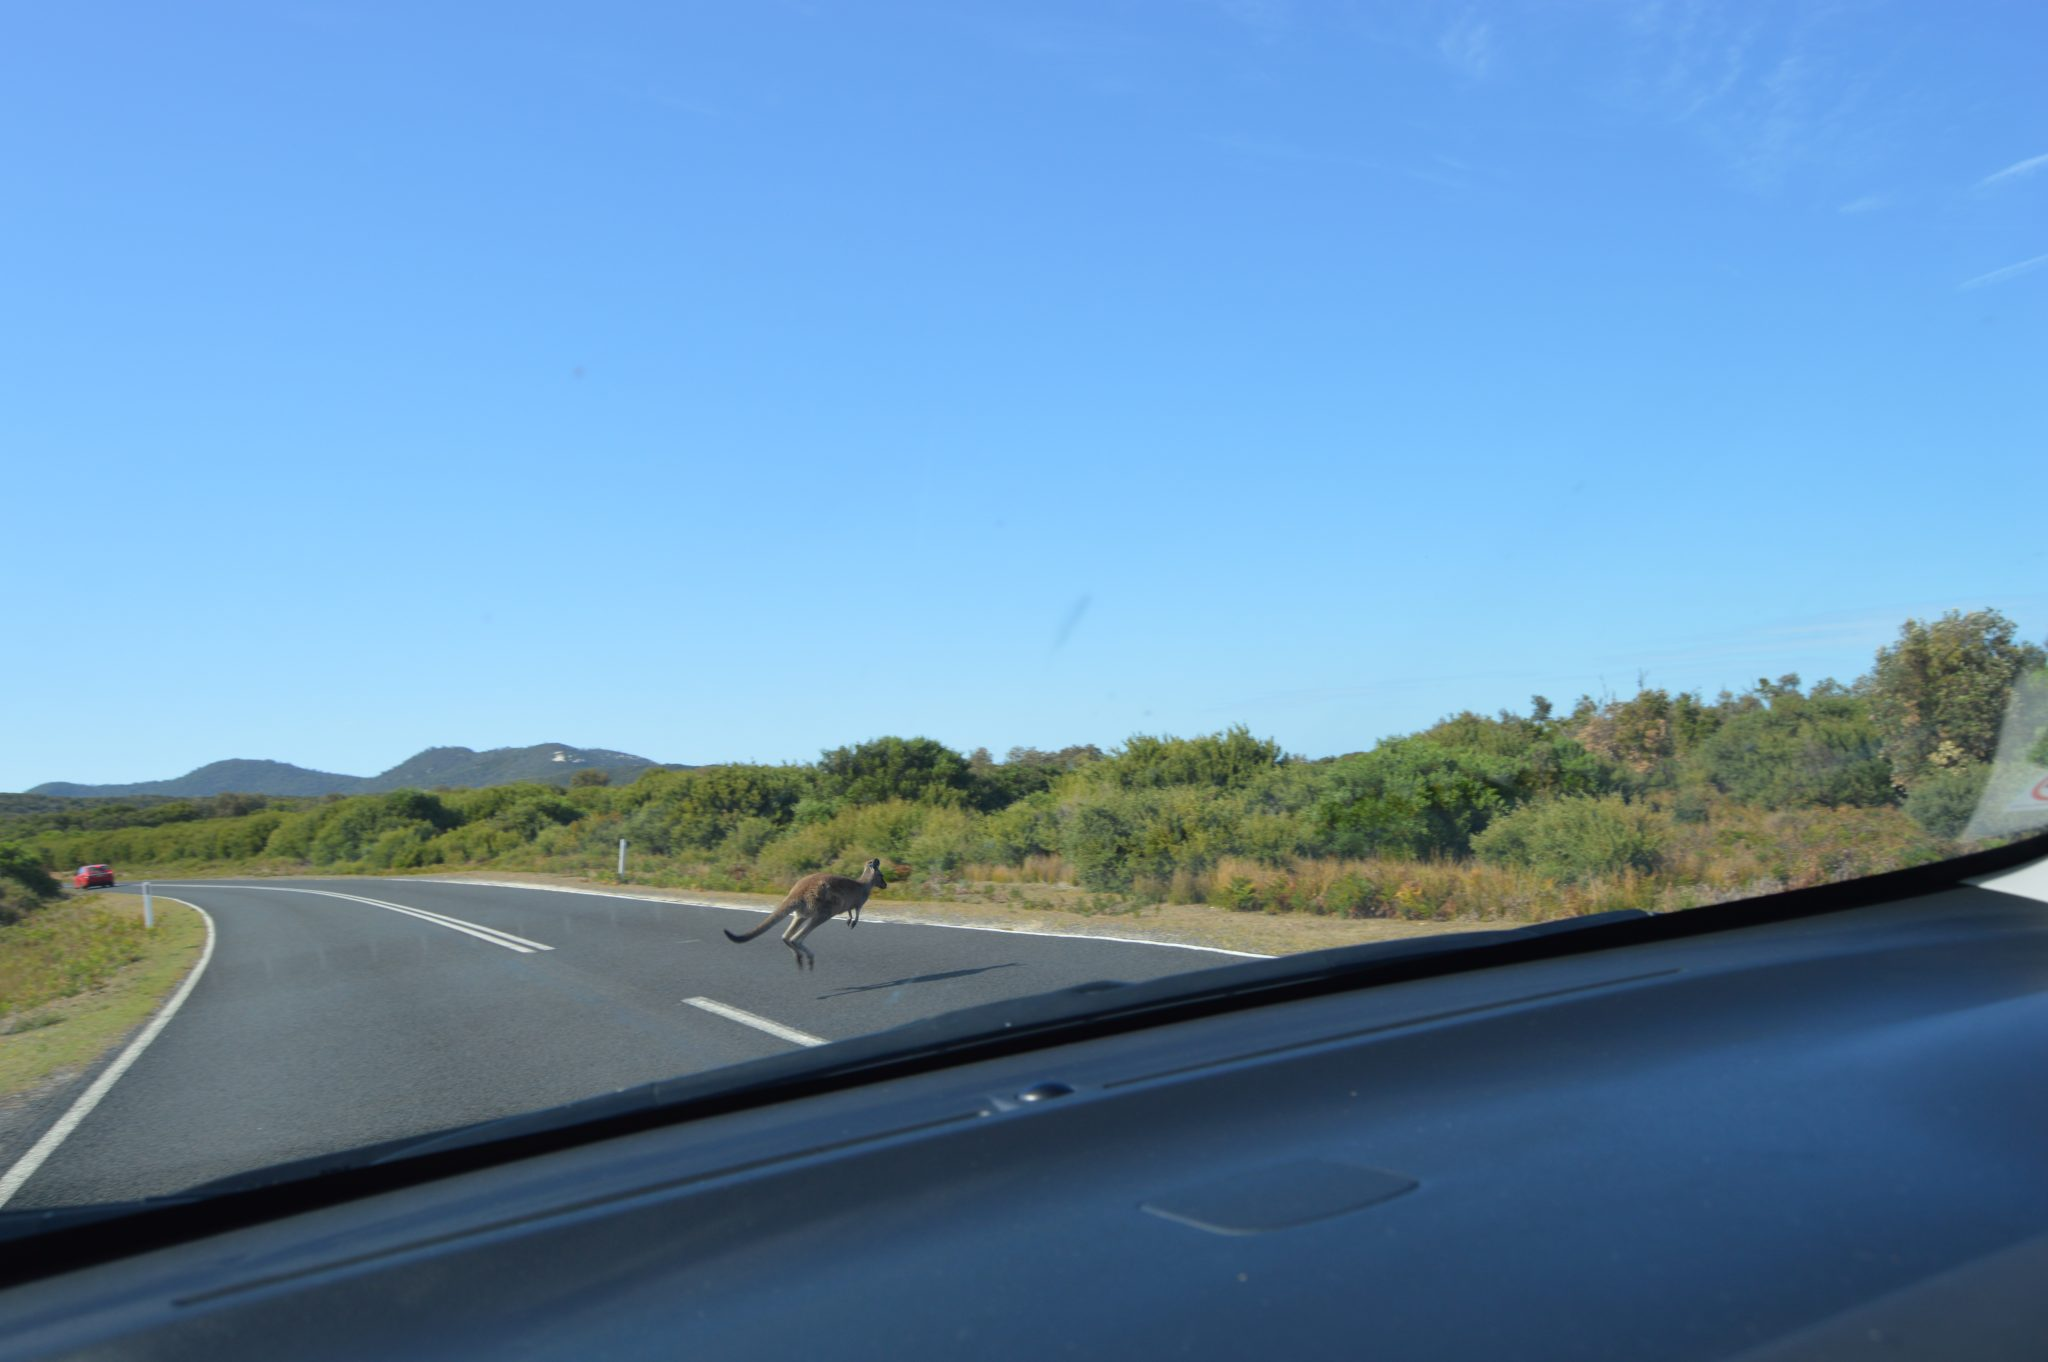 151.3. Sometimes a car cannot avoid hitting a kangaroo jumping across the road. Thank goodness the timing was right for this kangaroo and for us!JPG